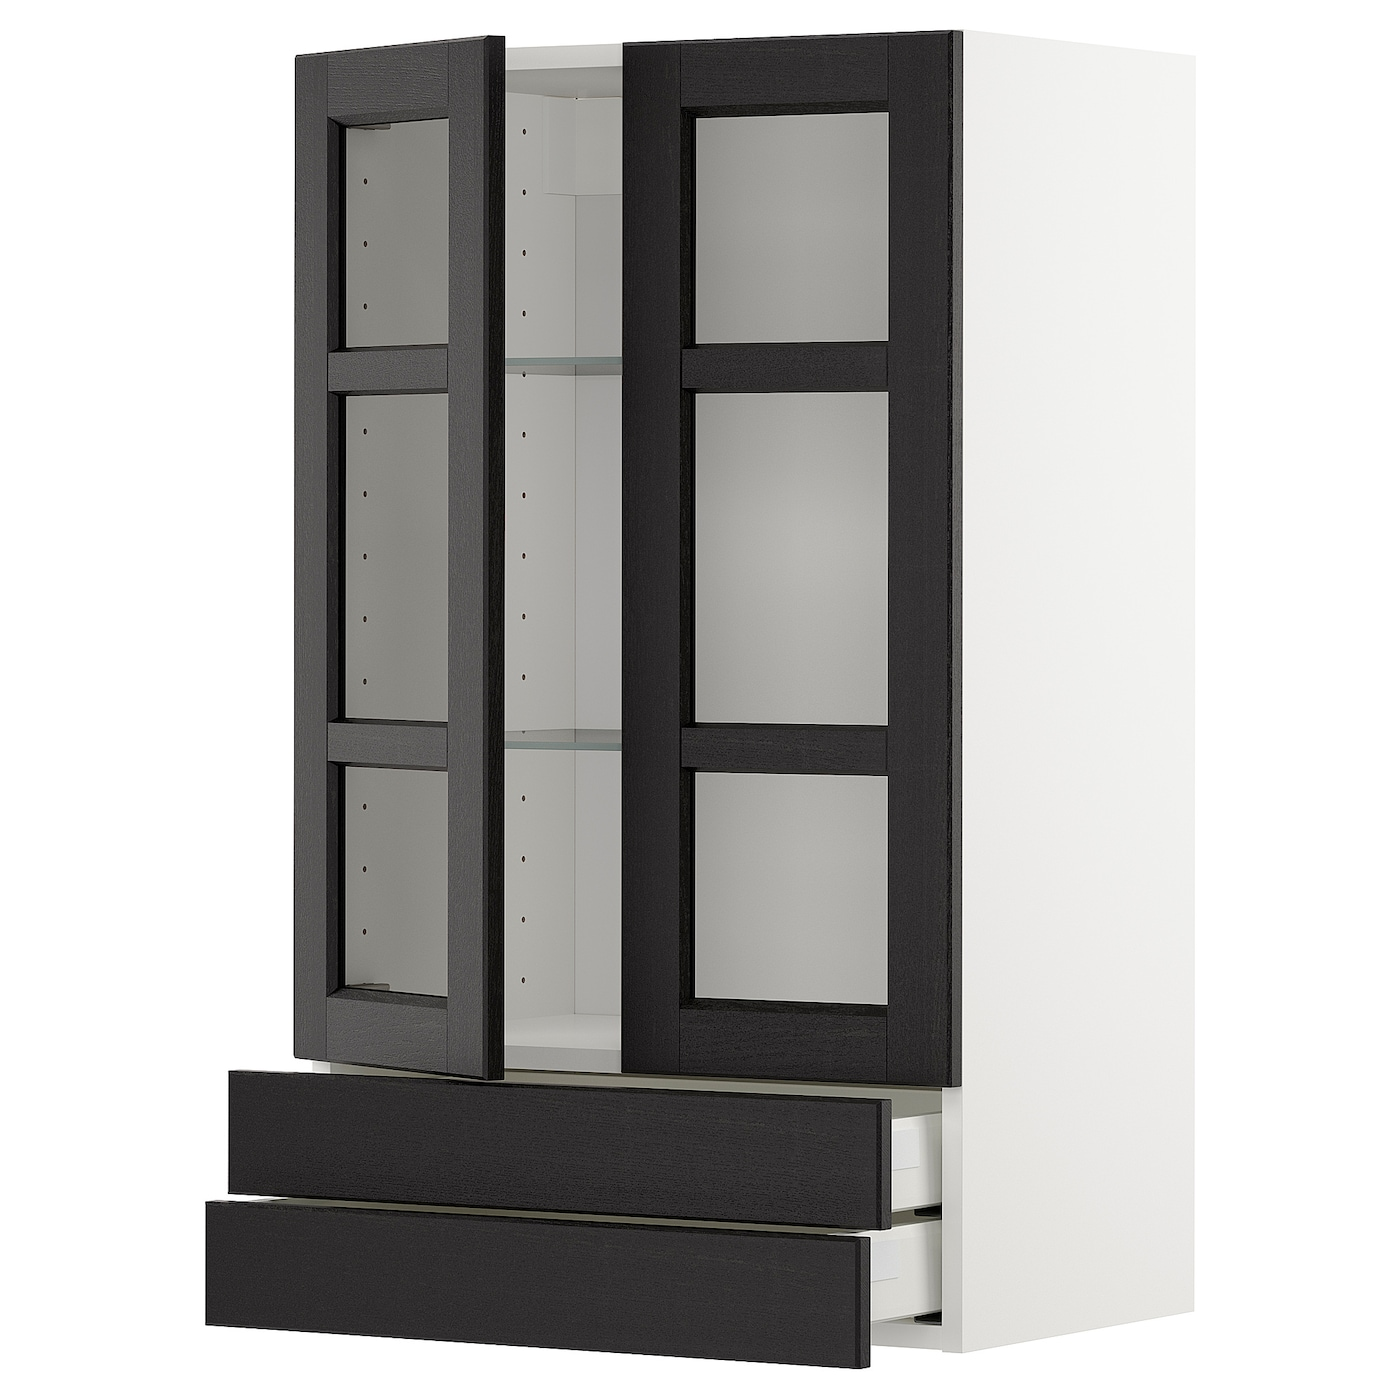 IKEA METOD wall cab w 2 glass doors/2 drawers Sturdy frame construction, 18 mm thick.